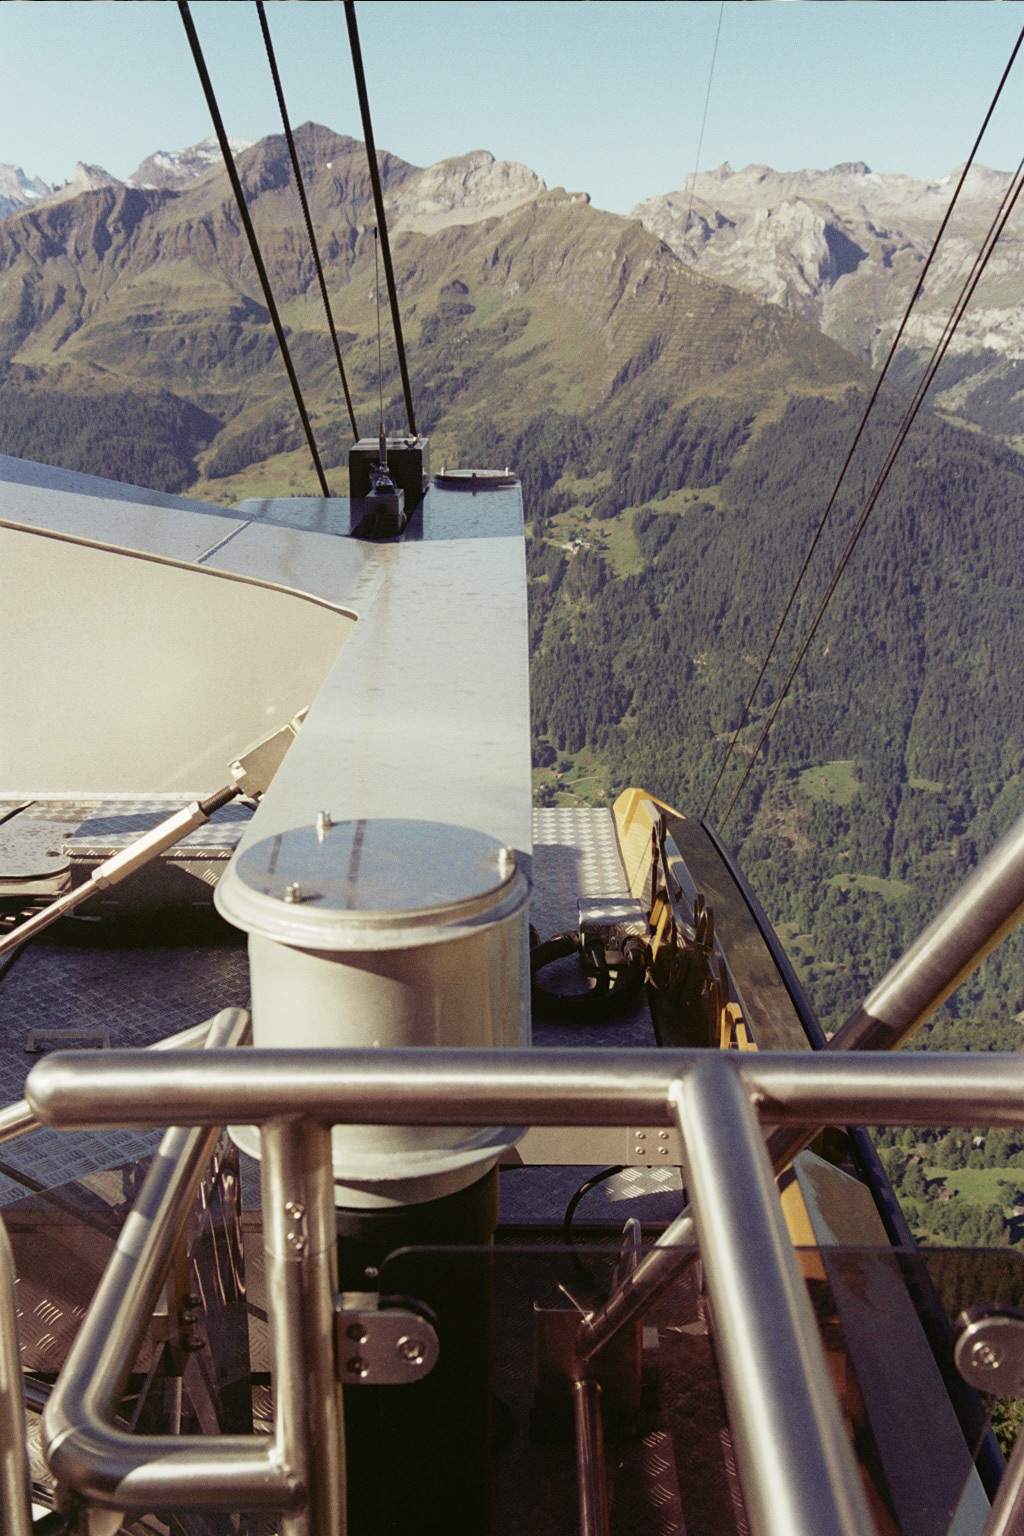 Taking a View from Top of a Cable Car